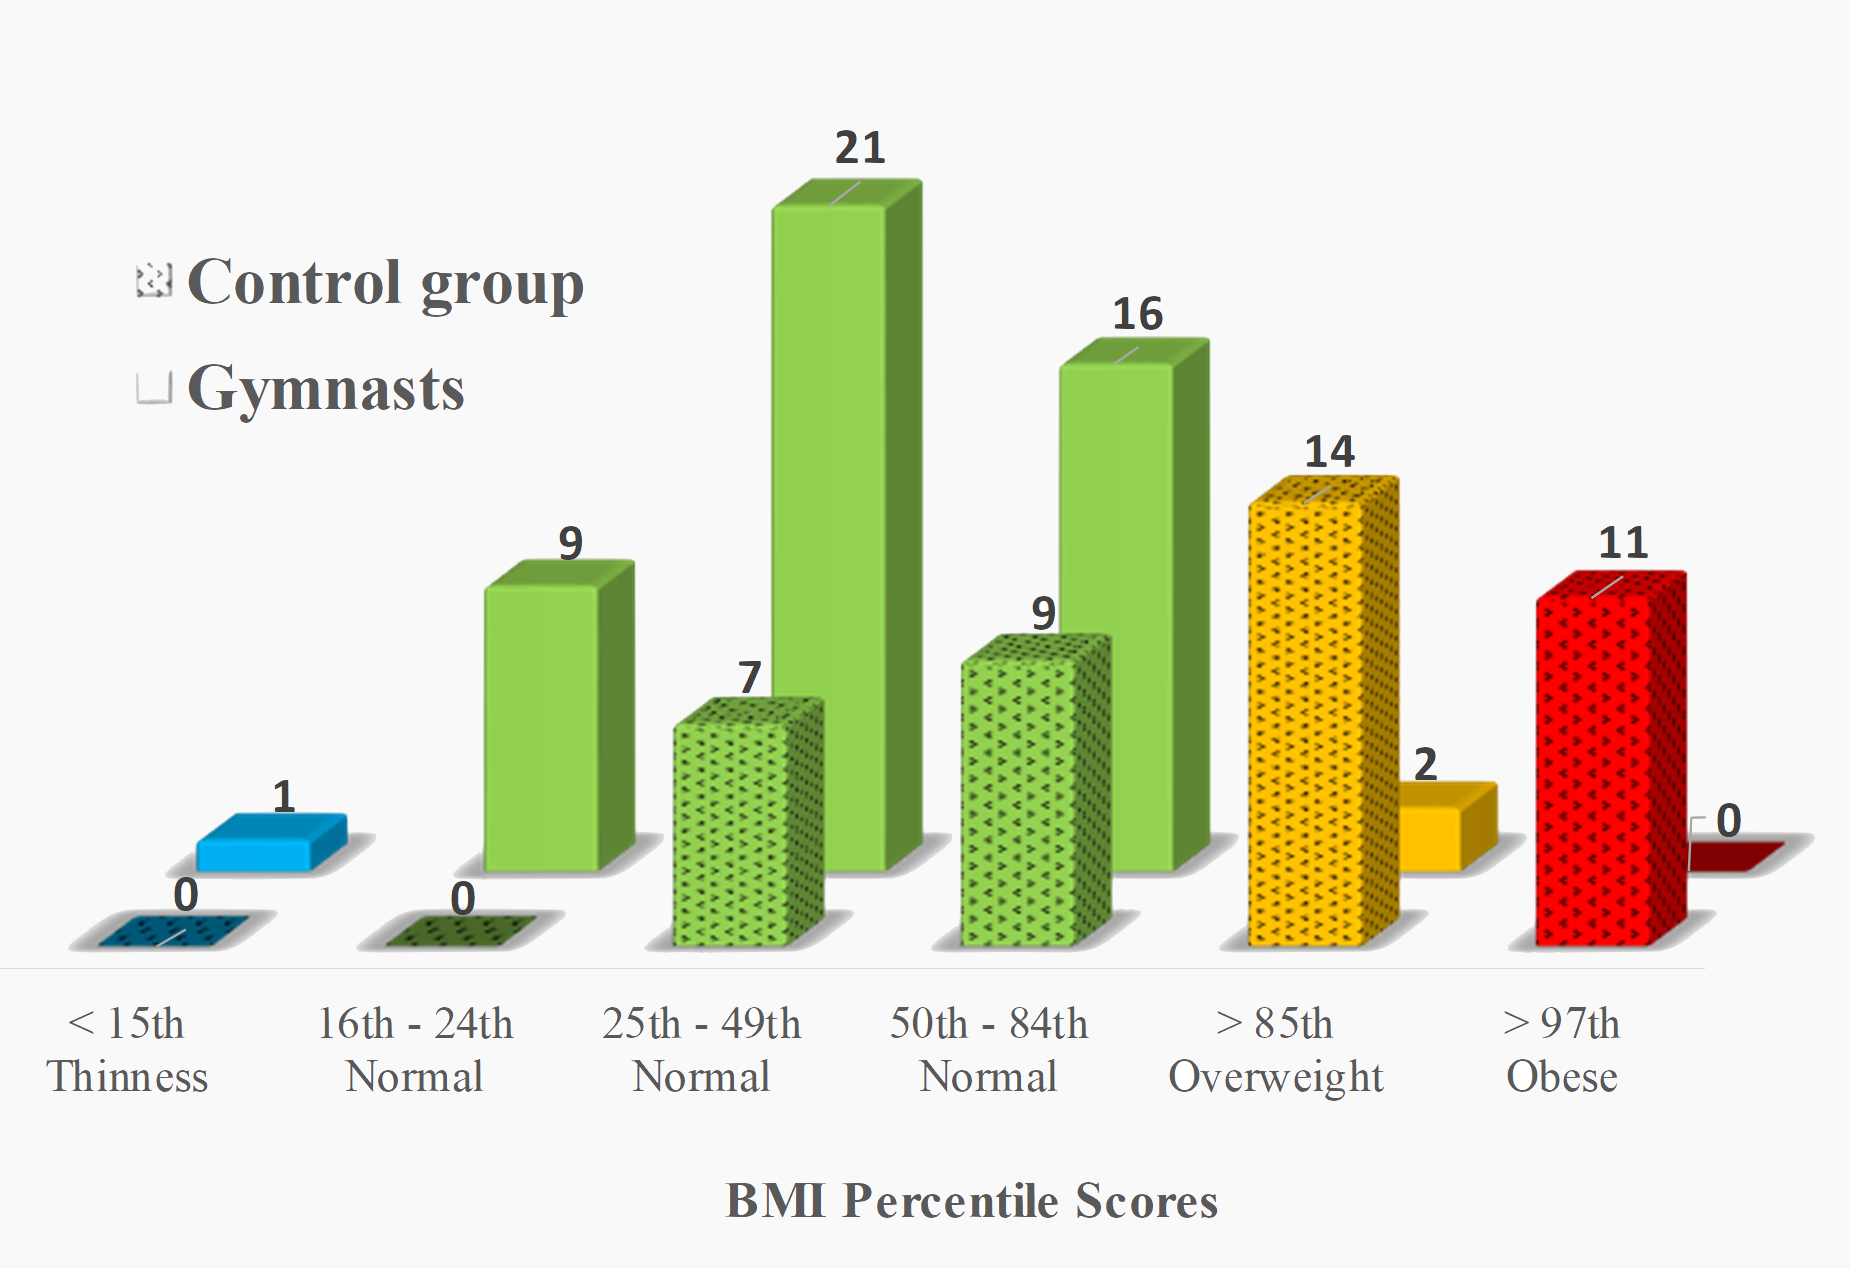 Distribution of the BMI percentile scores in the artistic gymnasts